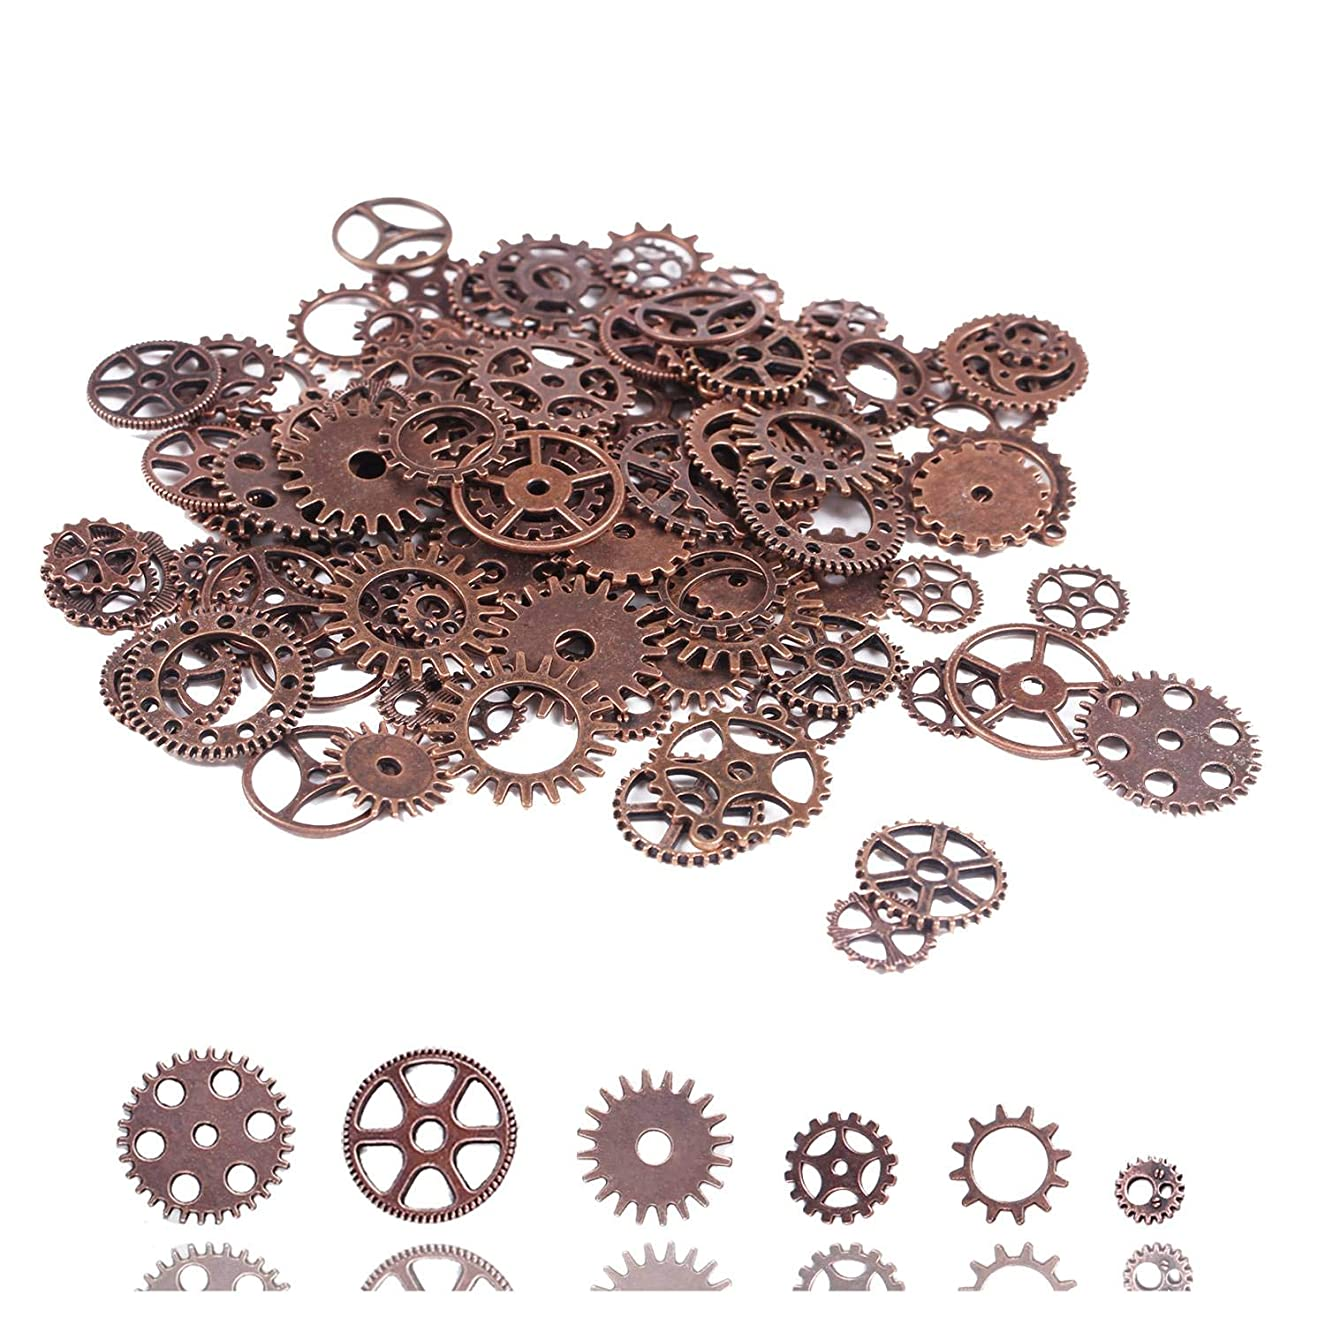 100 Gram Antiqued Red Copper Metal Skeleton Steampunk Watch Gear Cog Wheel Sets Steampunk Gear Charms Pendant Watch Wheel Cog Crafting Jewelry Making Accessory Handmade Cosplay